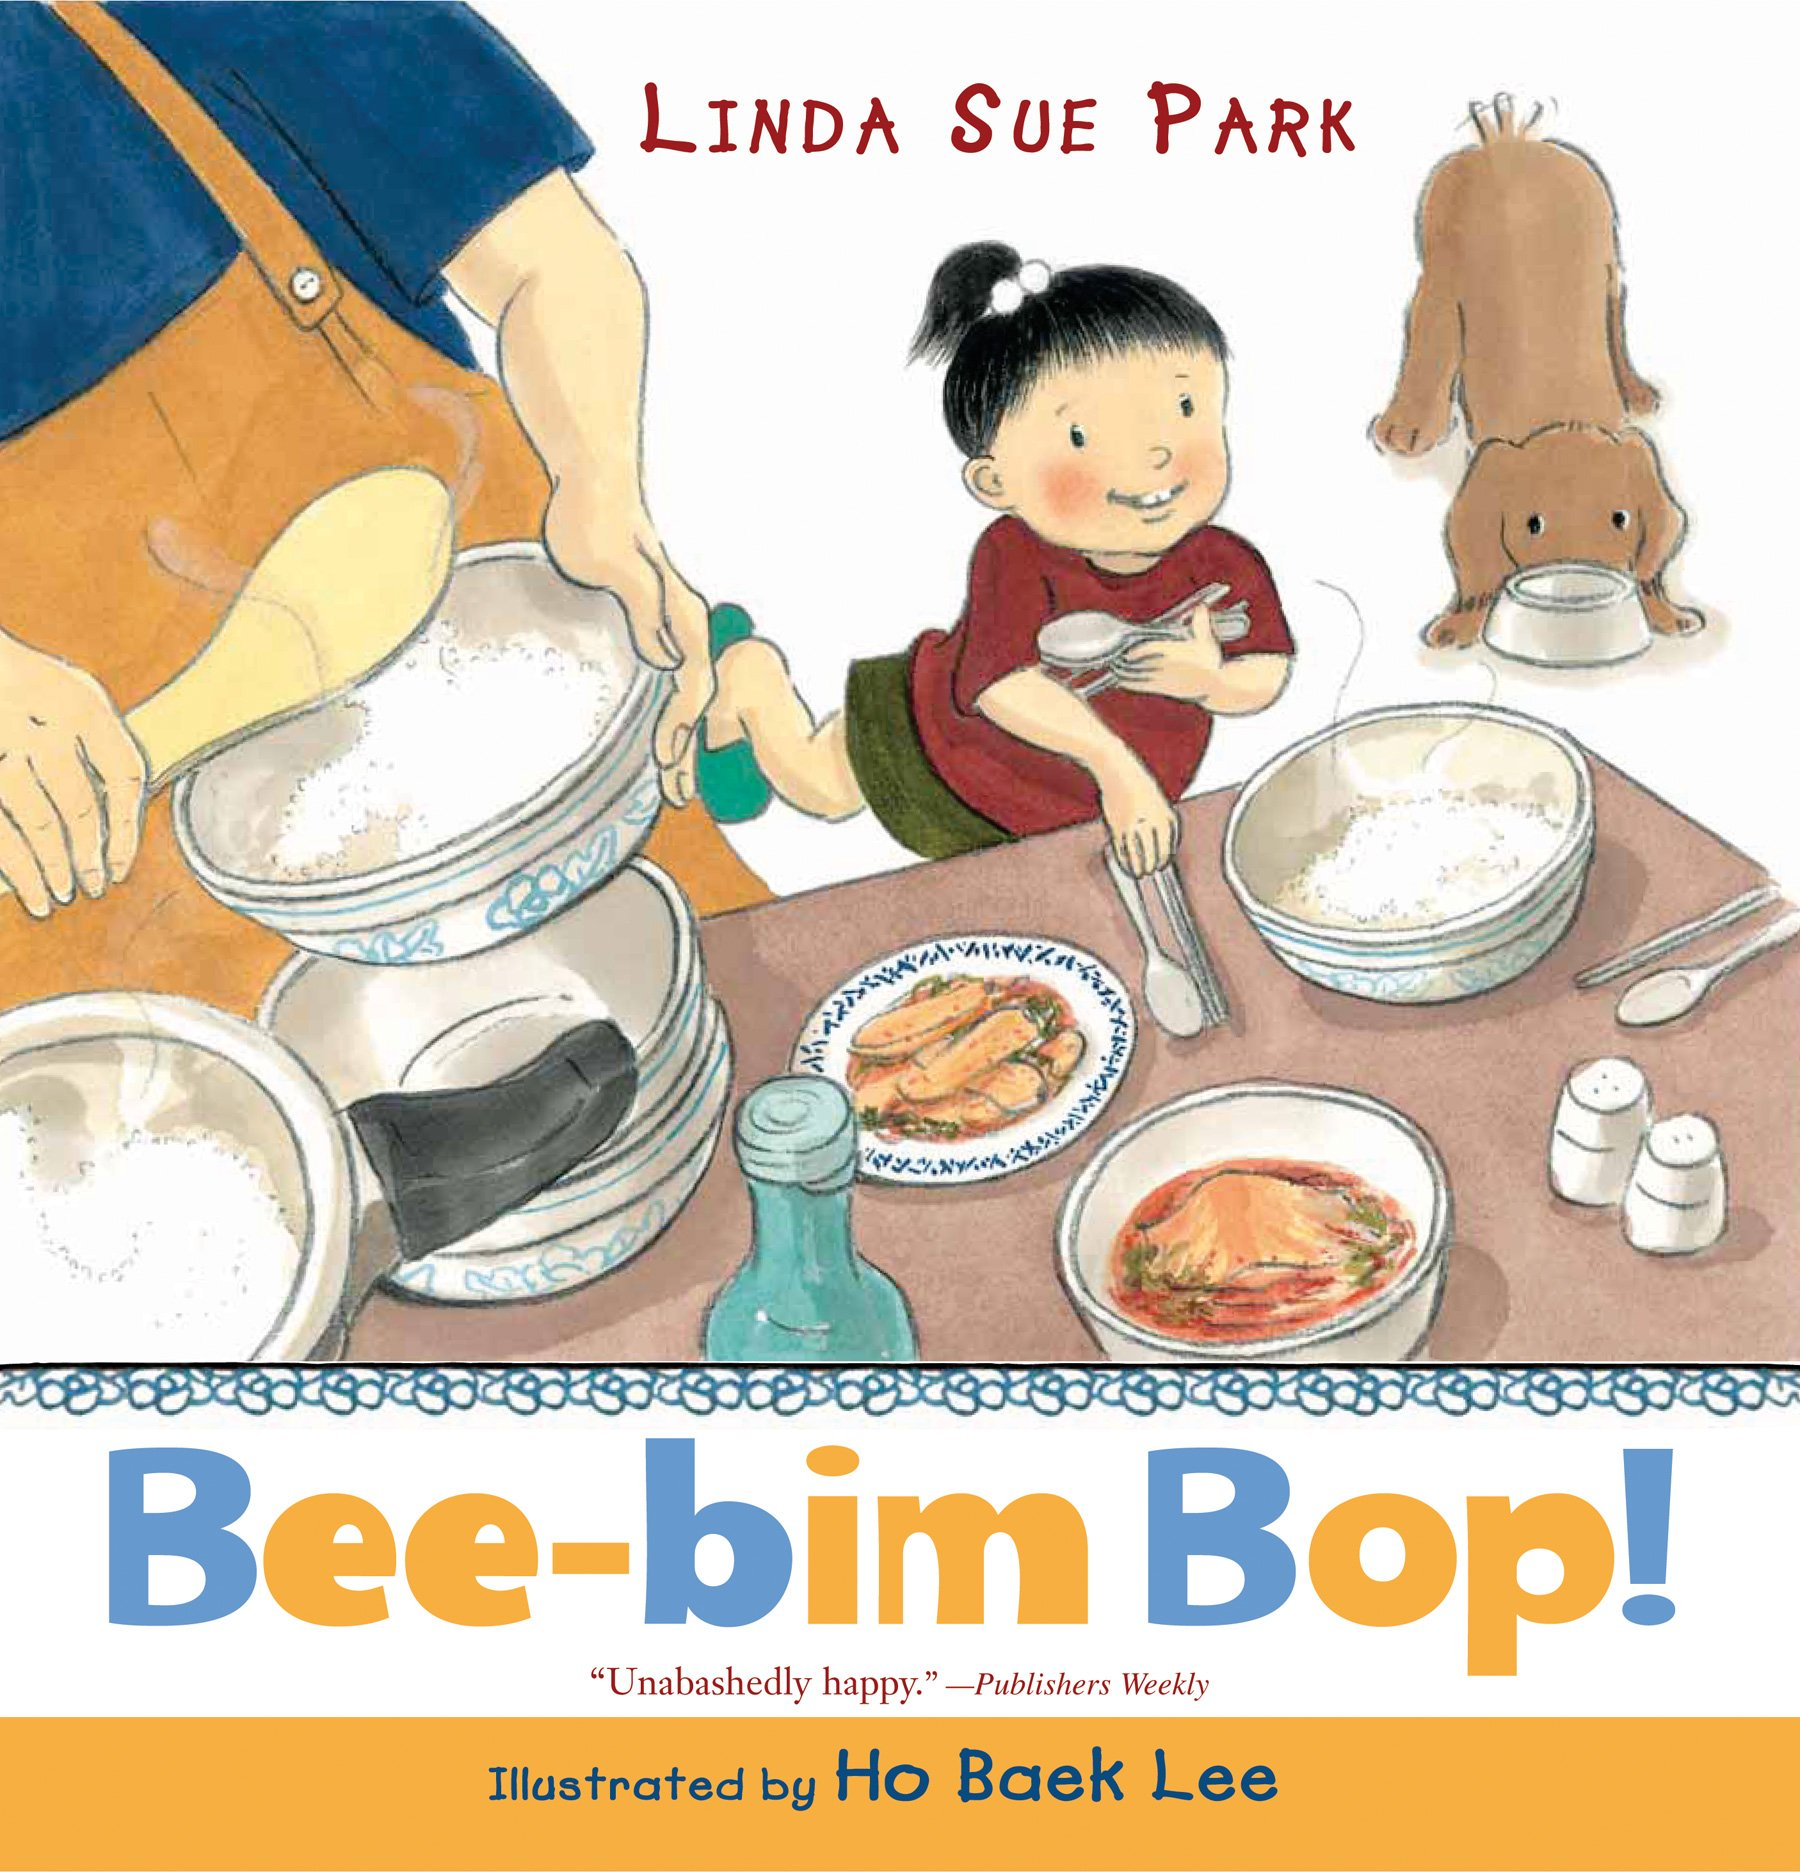 Bee-bim Bop! by Linda Sue Park and Ho Baek Lee